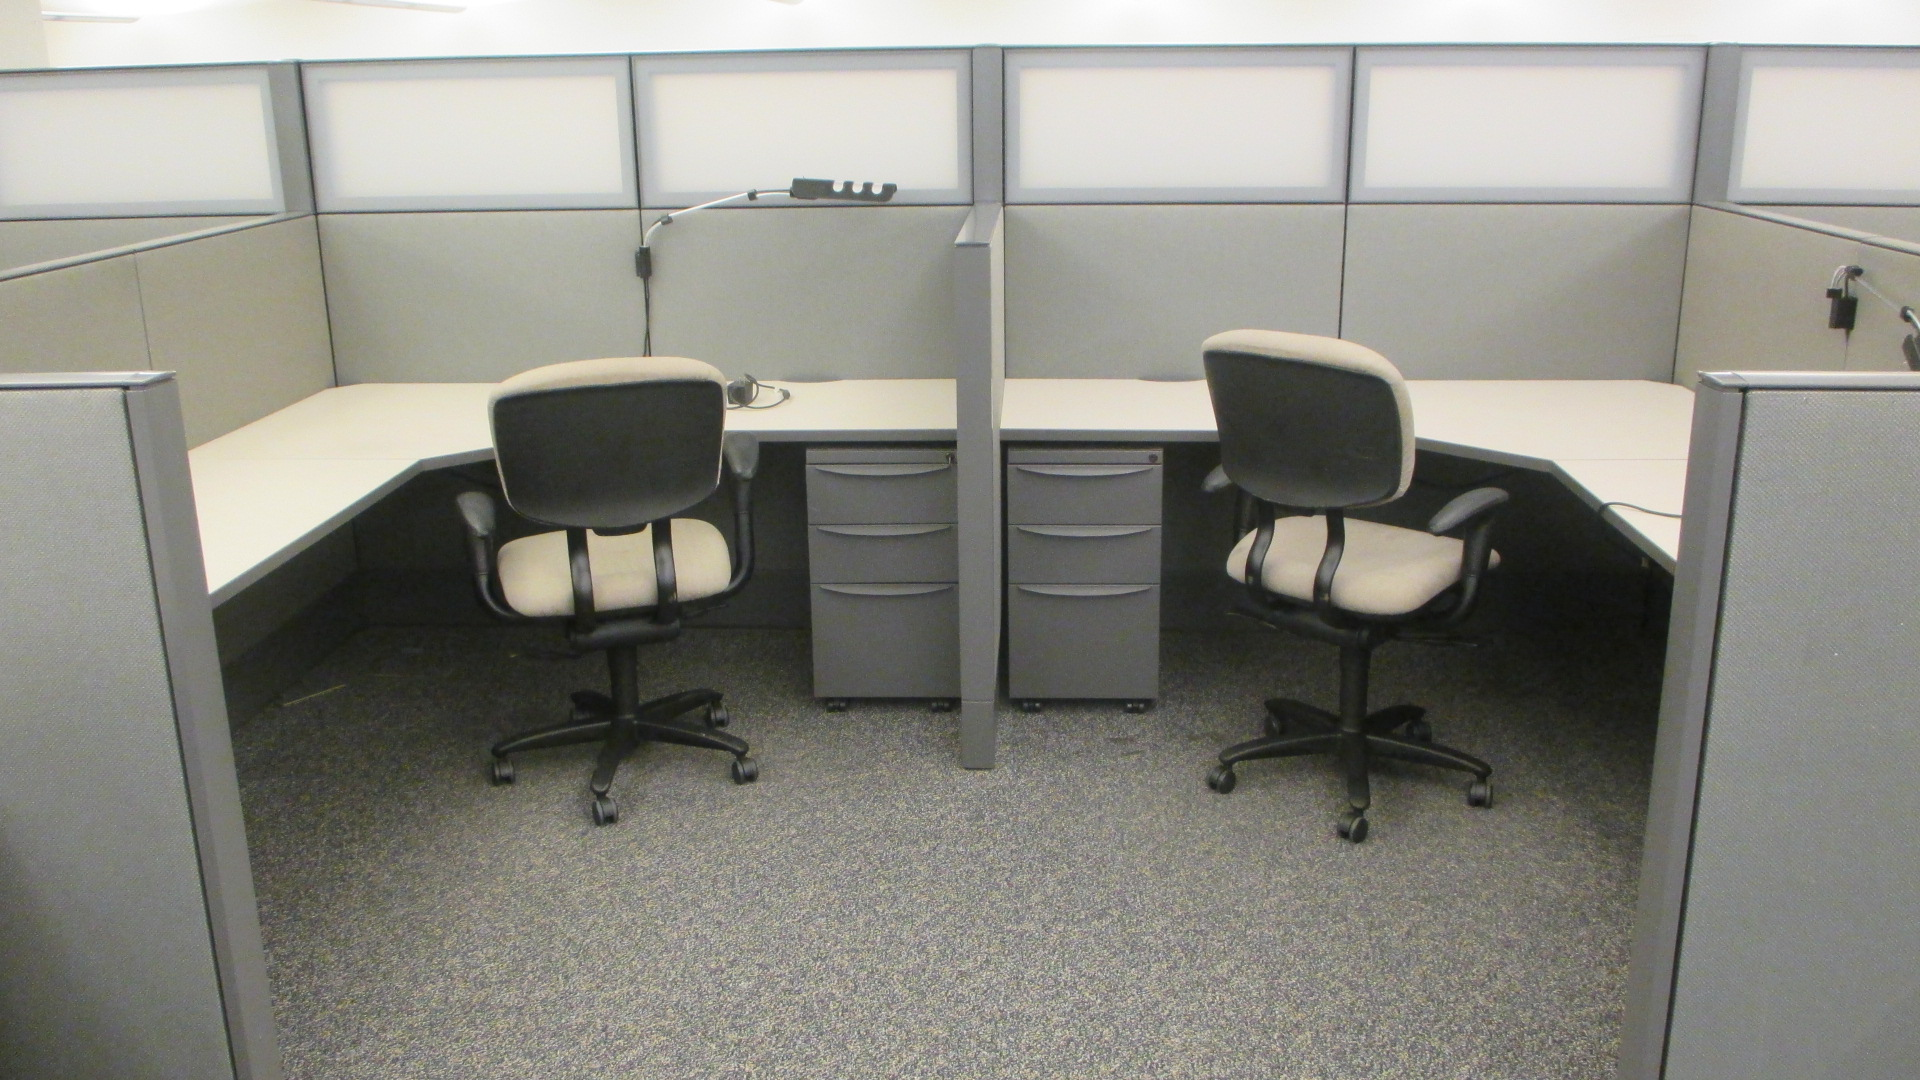 6x6 Haworth Premise Used Cubicles With Frosted Glass Spine